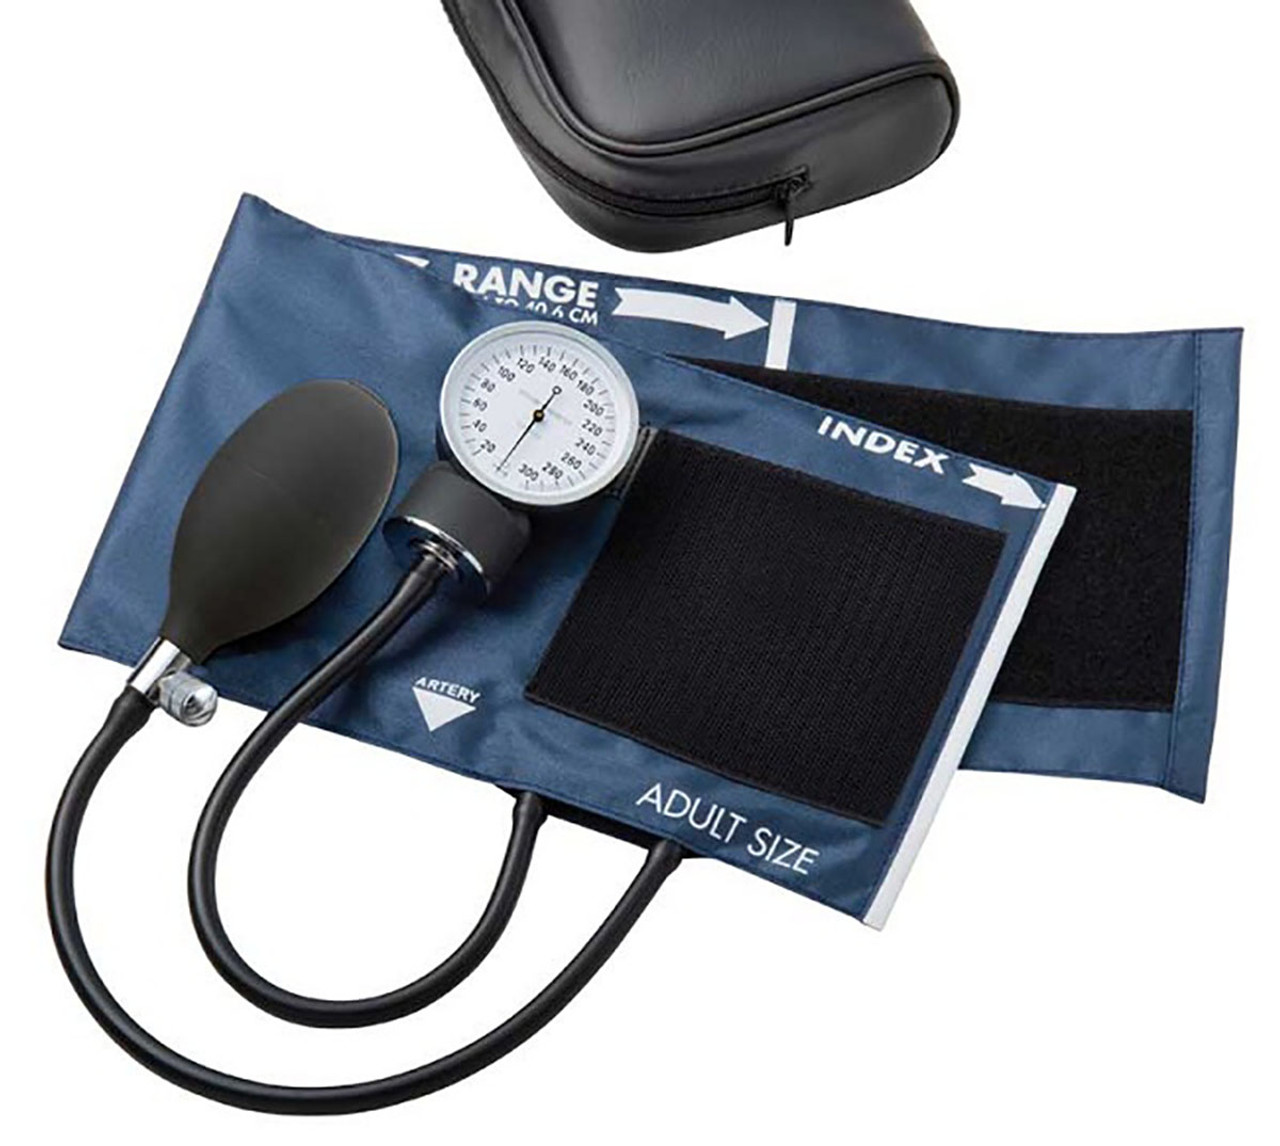 ADC Aneroid Sphyg, Large Adult, Navy